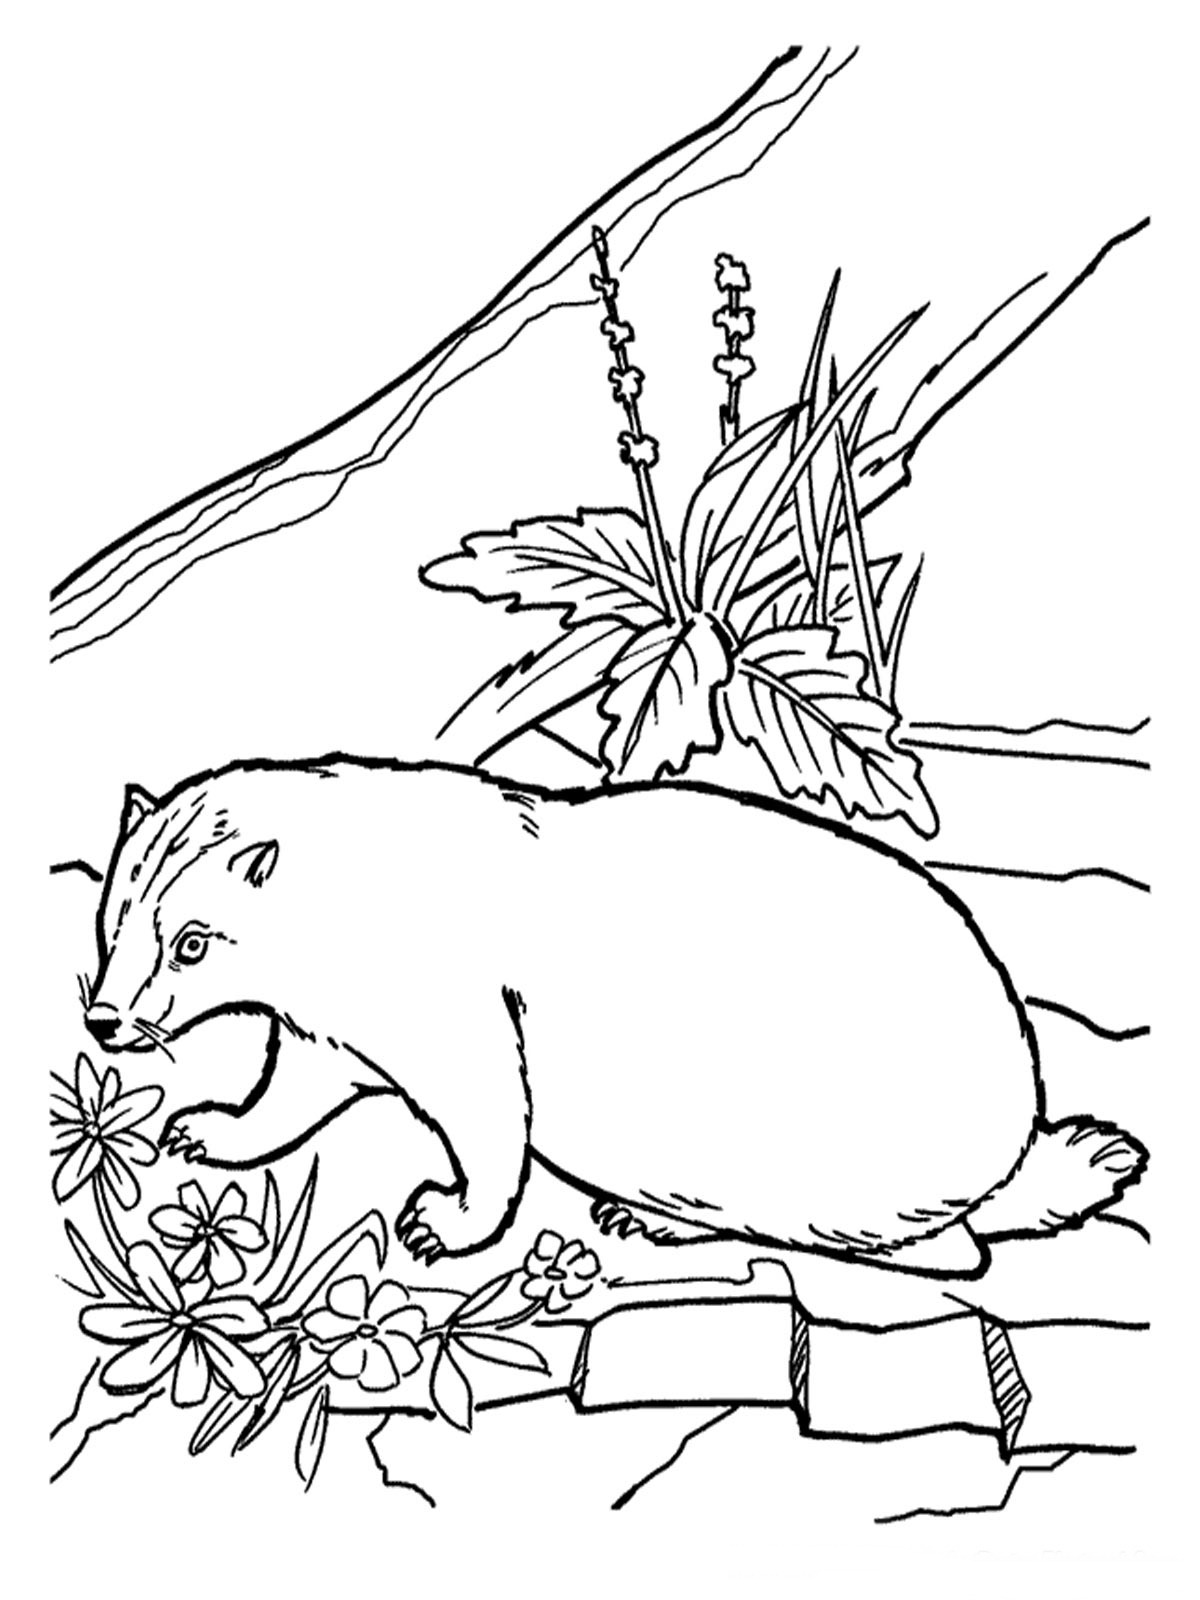 relistic coloring pages - photo#6